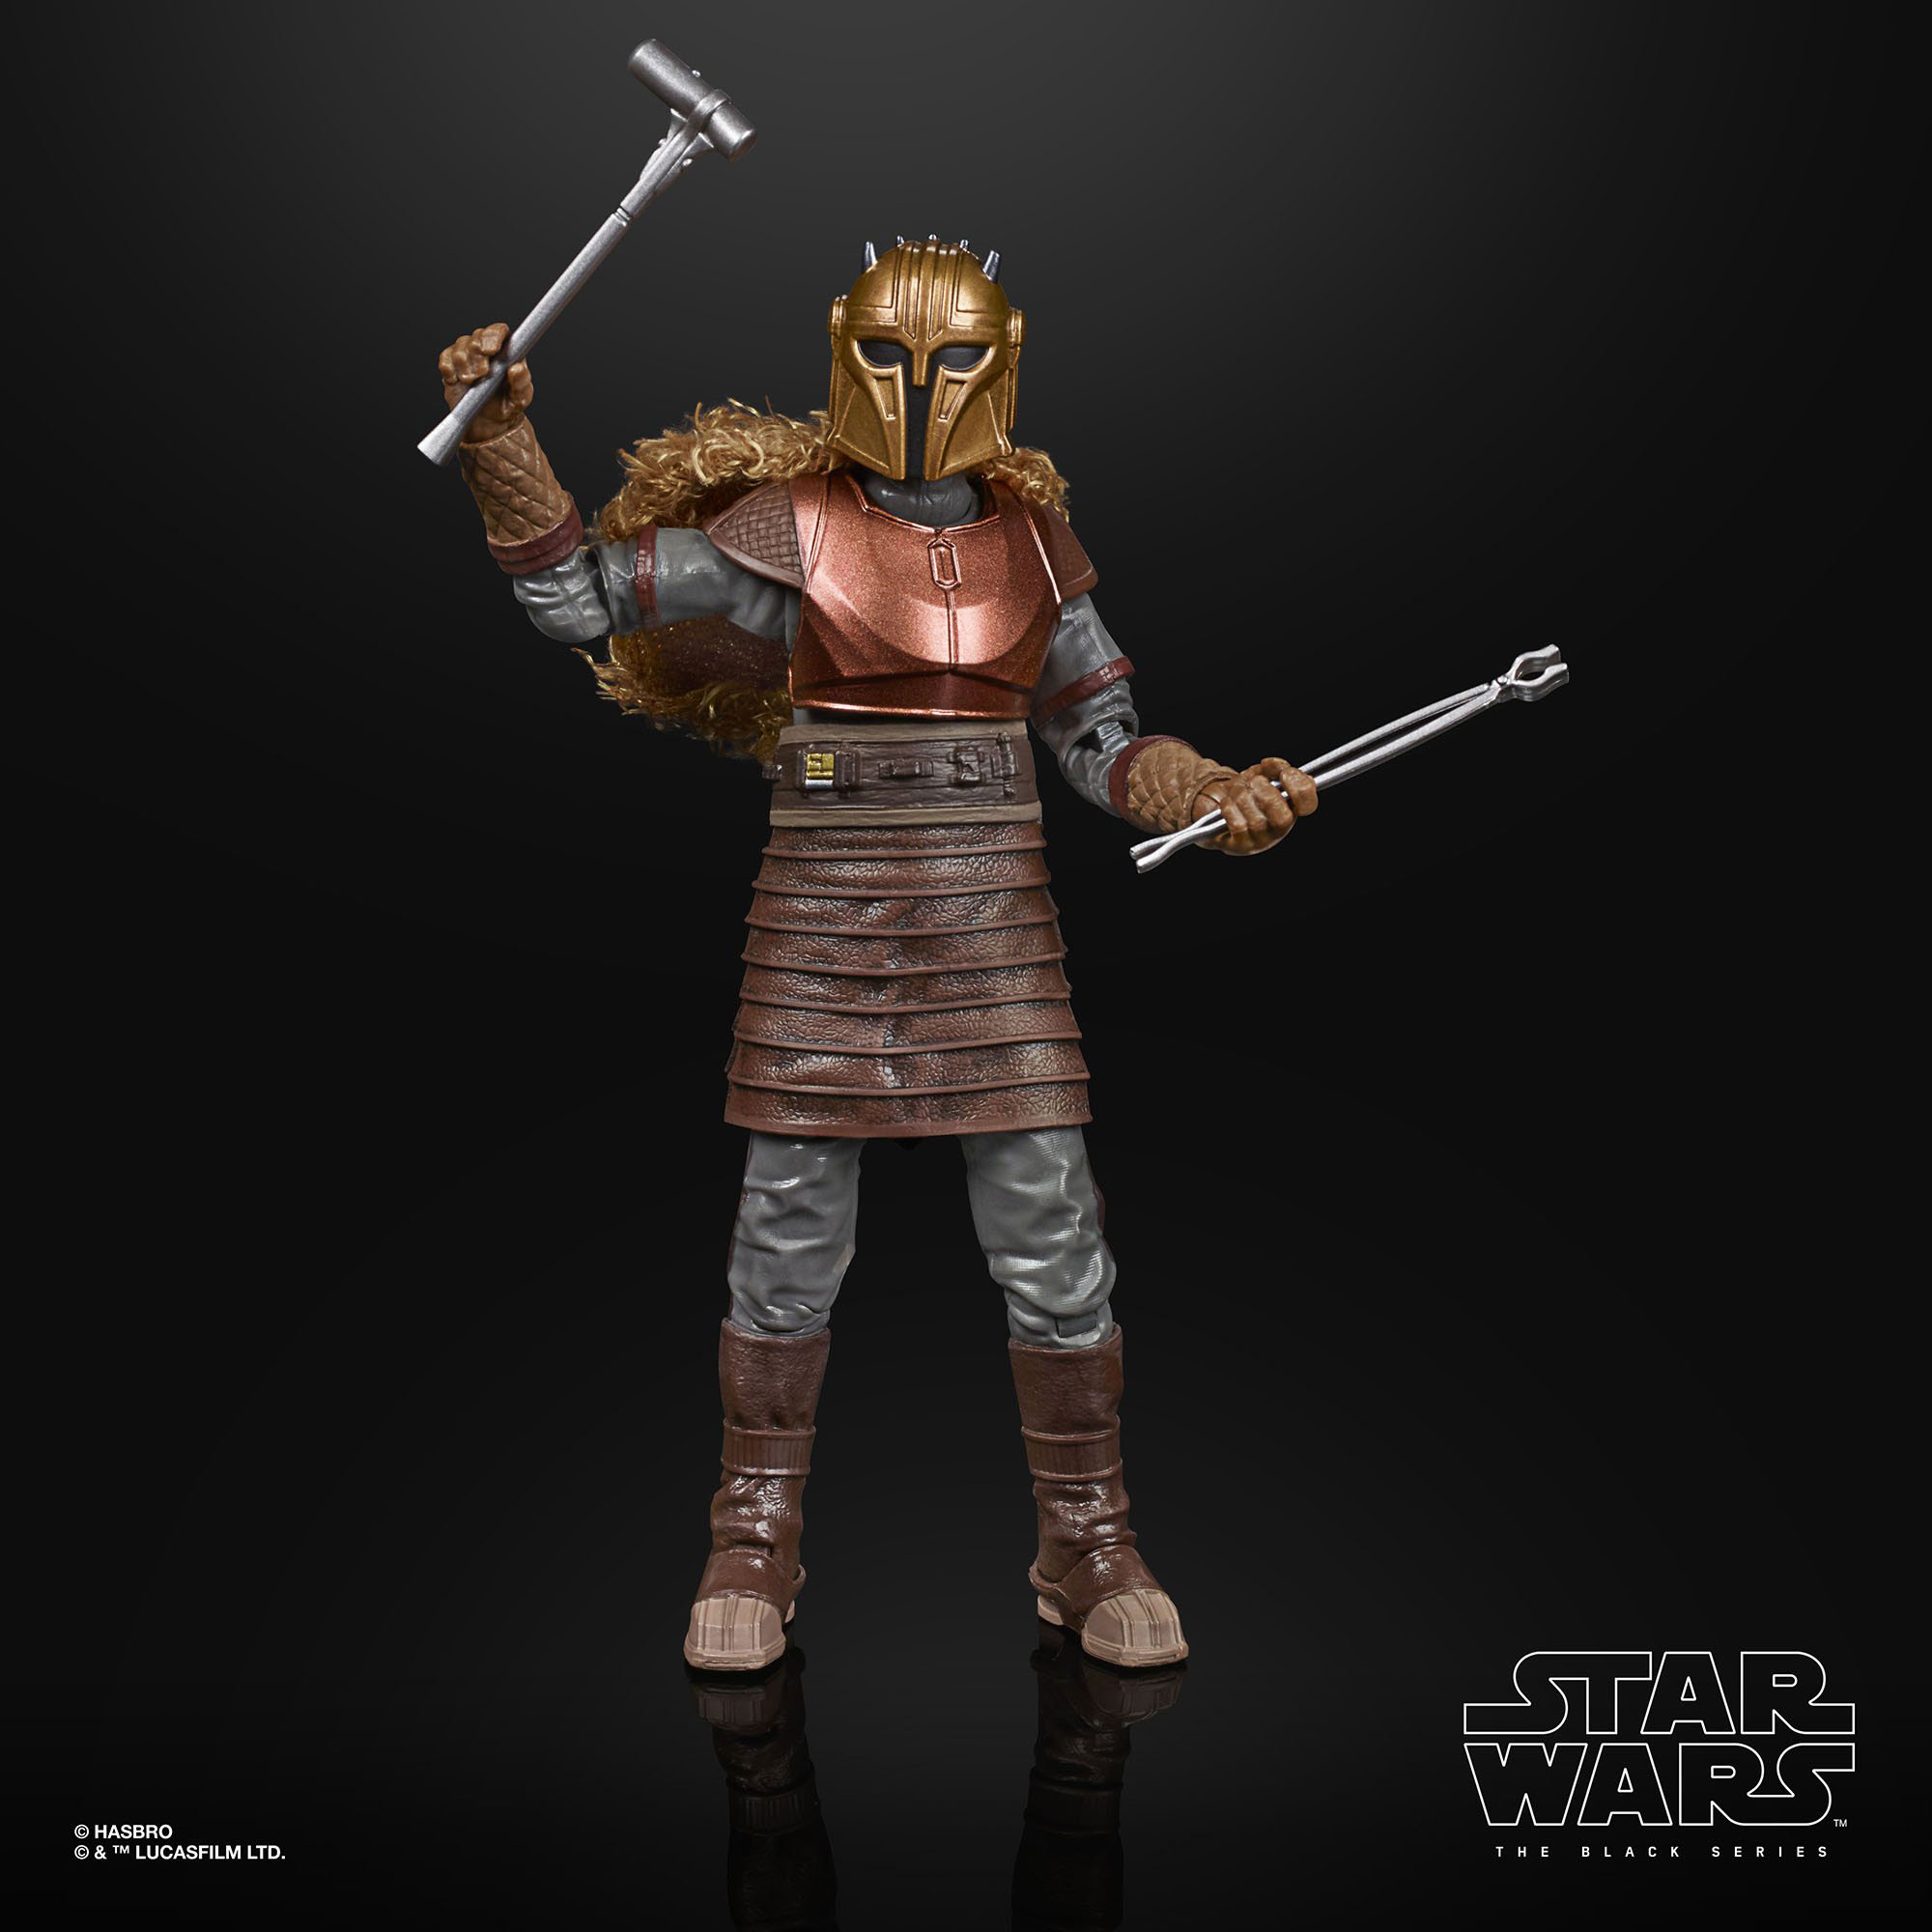 star-wars-black-series-the-armorer-mandalorian-action-figure-5